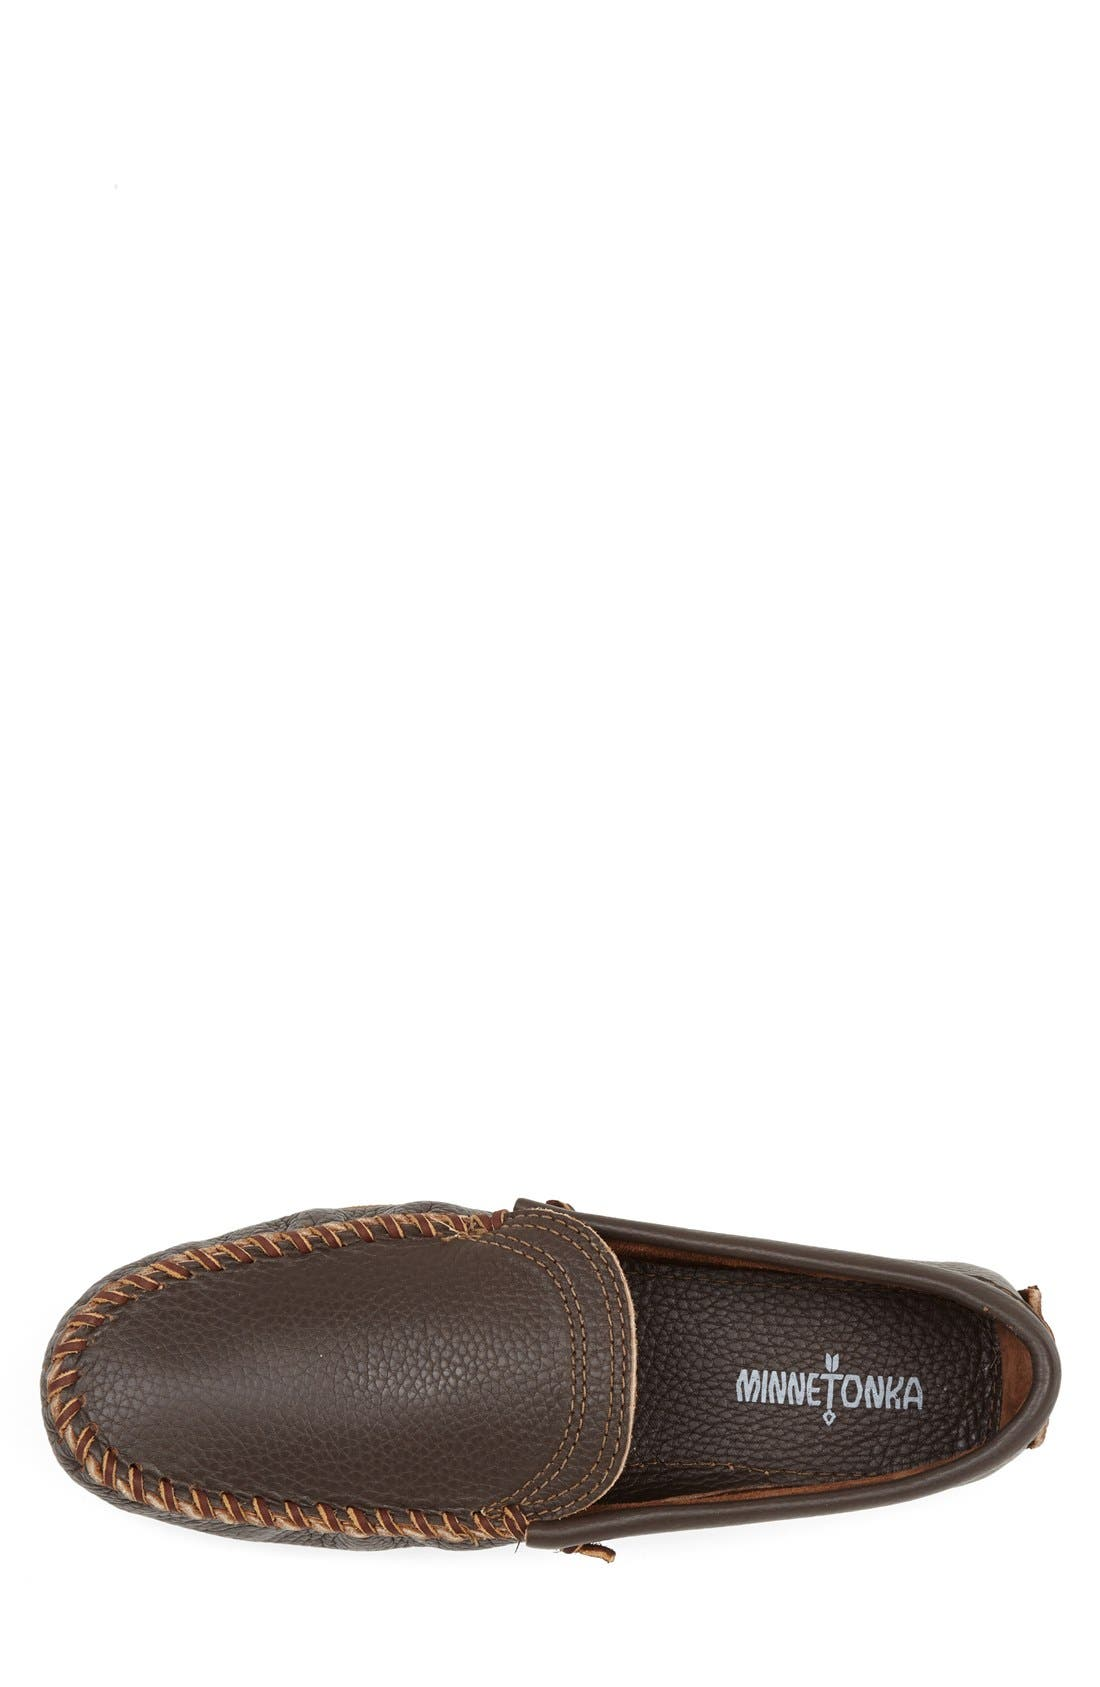 Venetian Loafer,                             Alternate thumbnail 3, color,                             Dark Brown